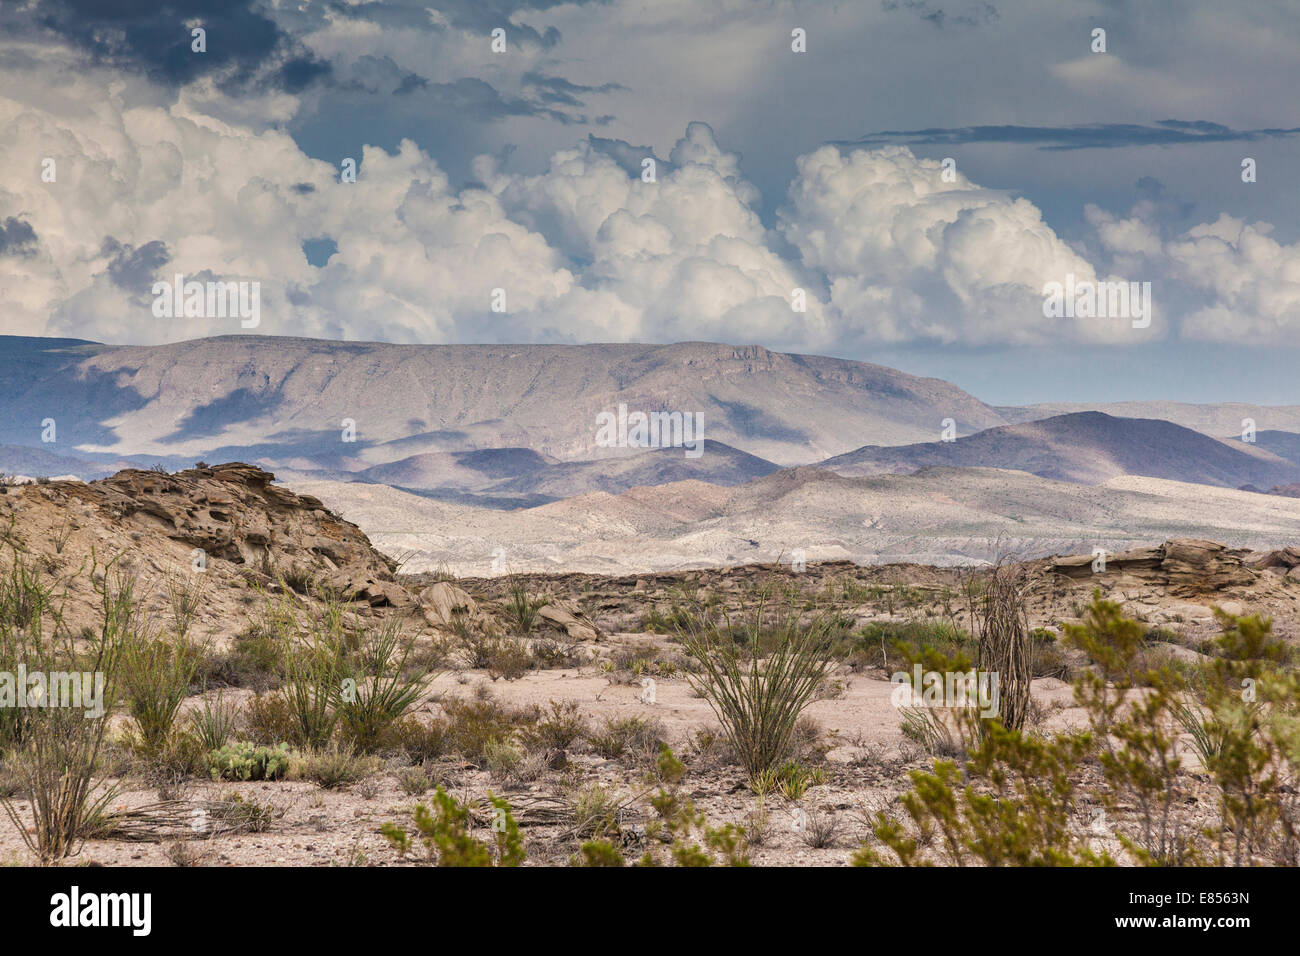 Storm clouds developing over desert in Big Bend National Park. Stock Photo